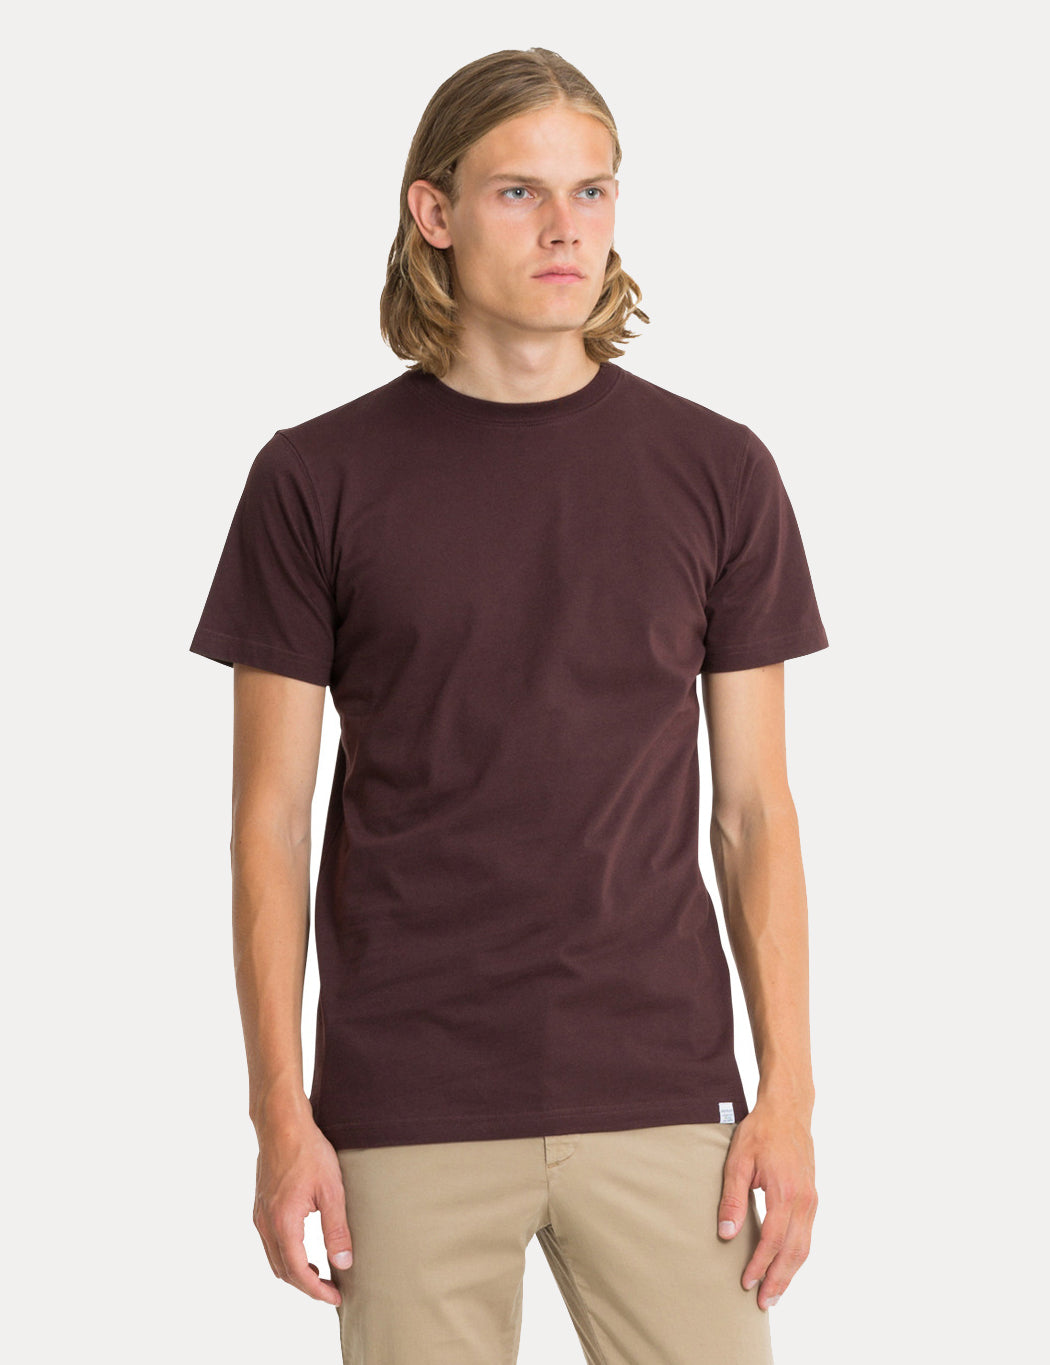 Norse Projects Niels Standard T-Shirt - Eggplant Brown | URBAN EXCESS.